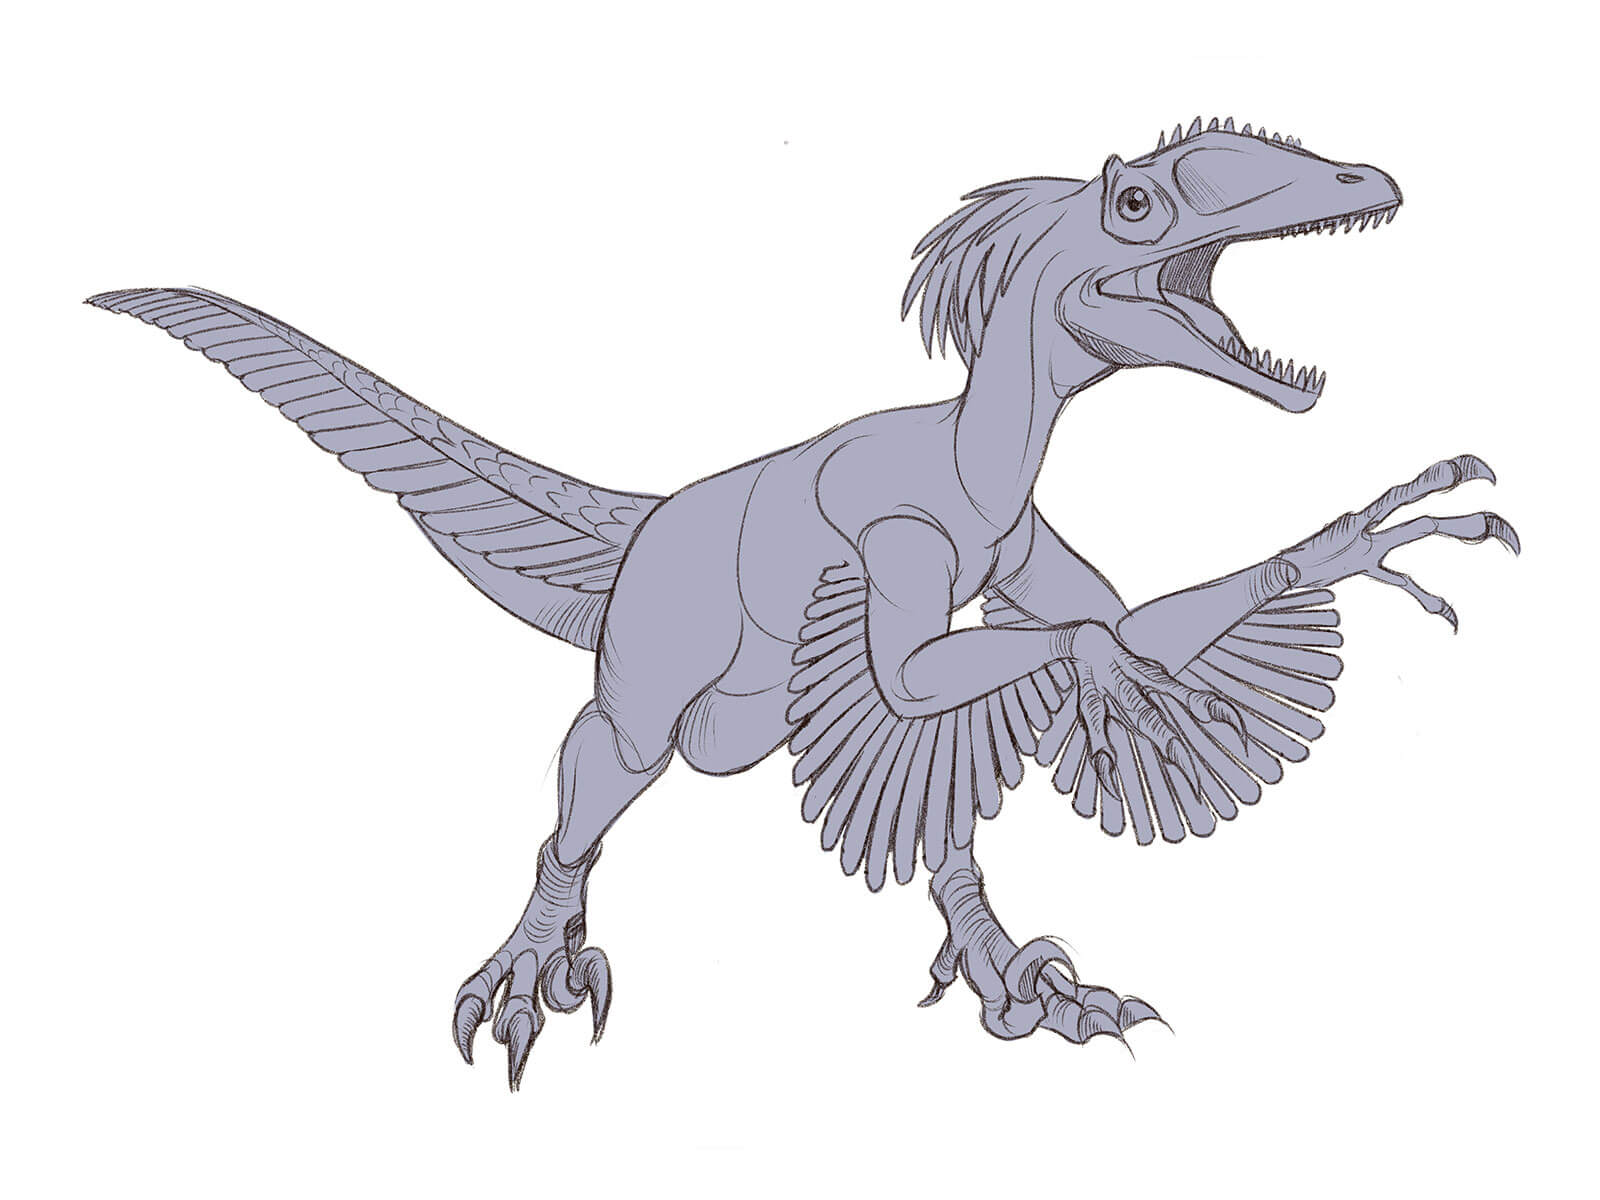 Black-and-gray sketch of a feathered velociraptor in mid-stride with its jaws open.